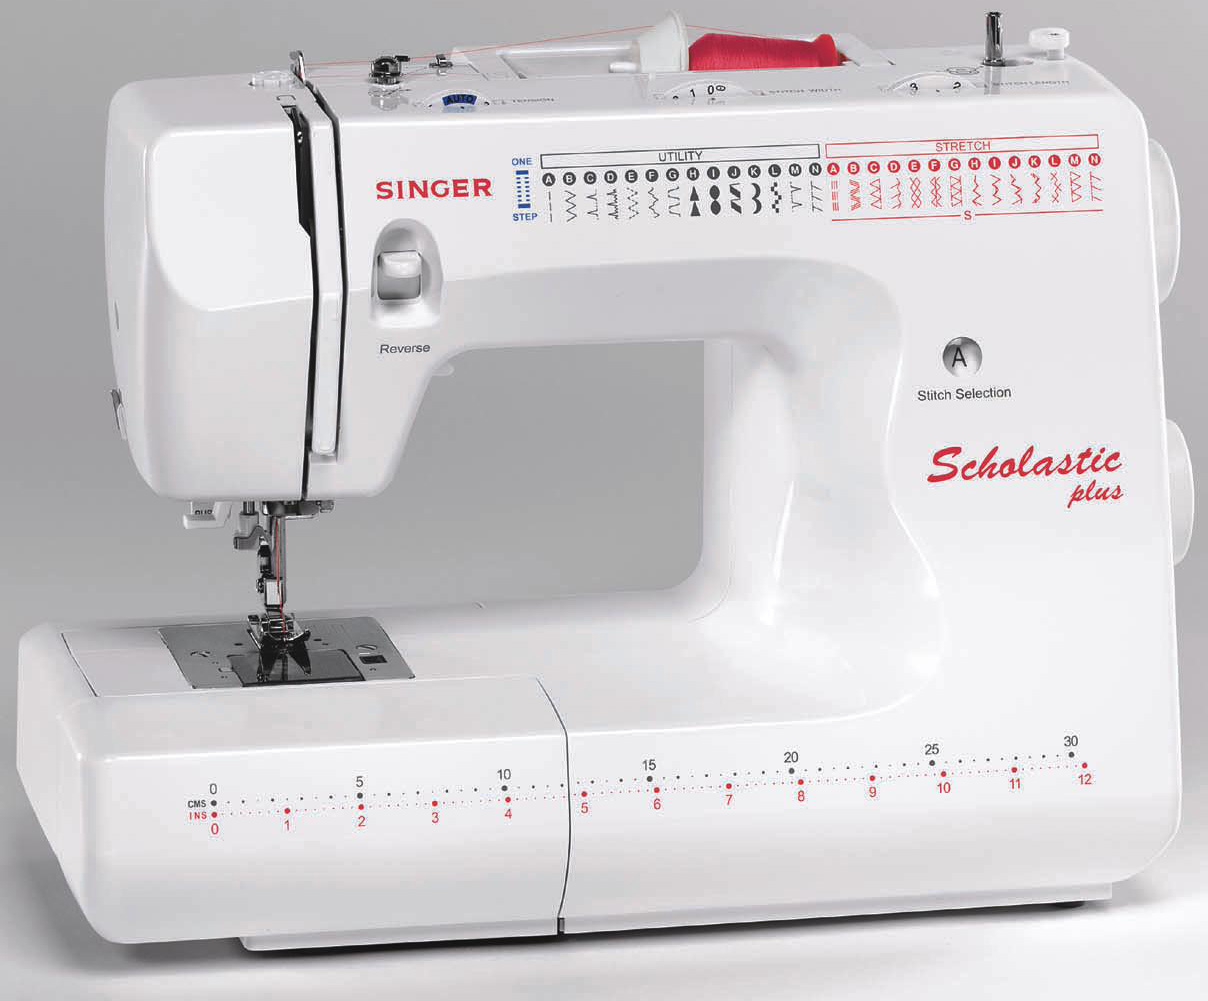 Singer Scholastic Plus 6550 Sewing Machine